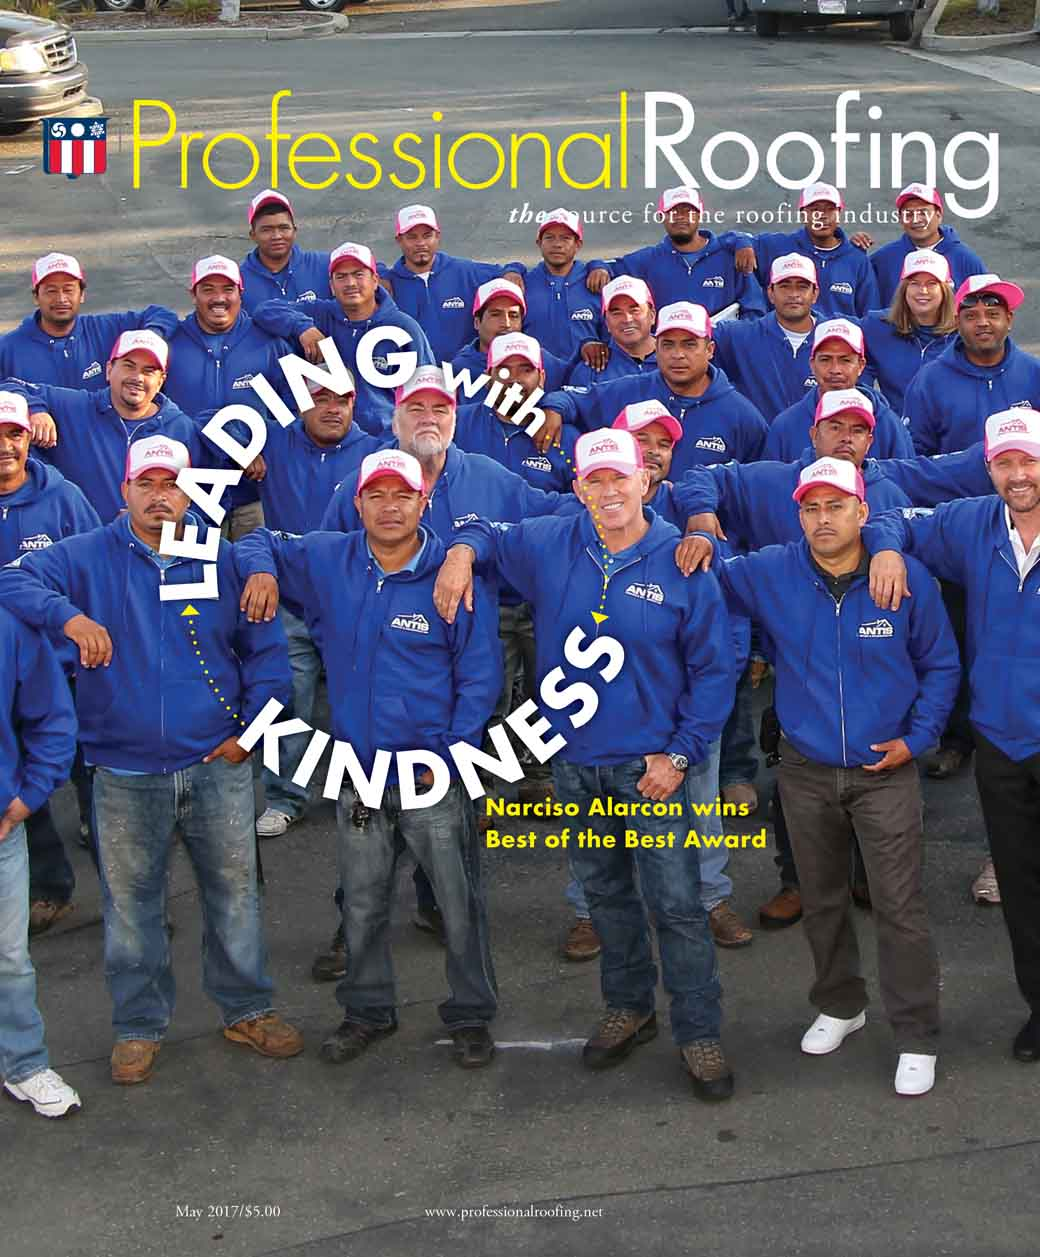 Professional Roofing Magazine 5/1/2017